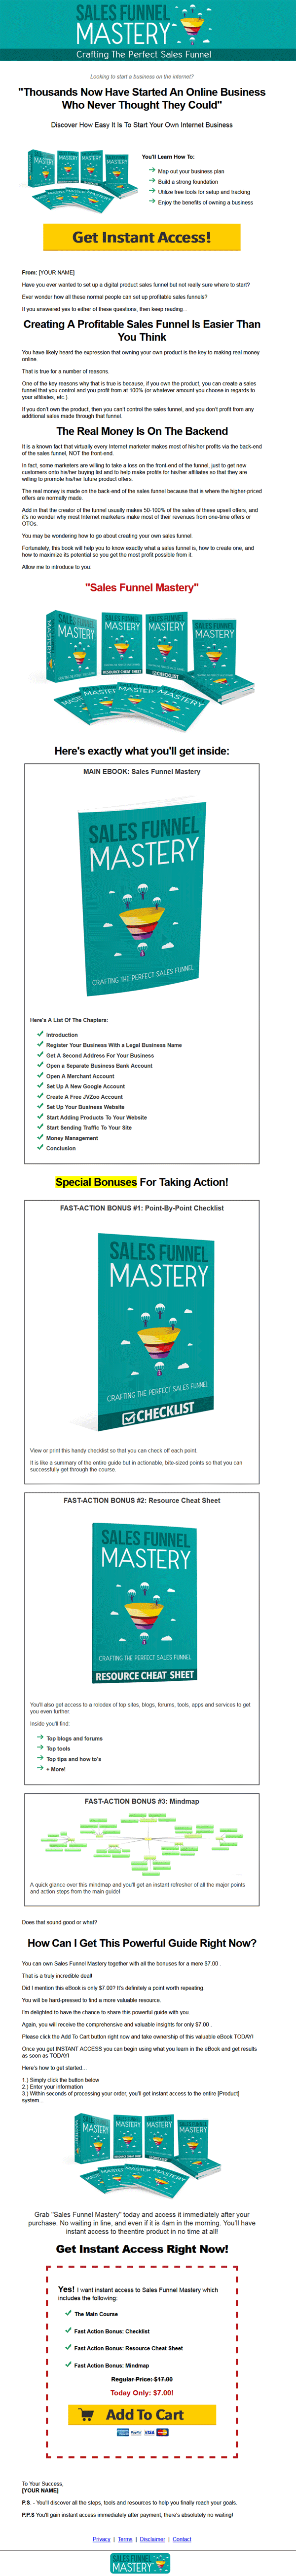 Sales Funnel Mastery Lead Generation MRR